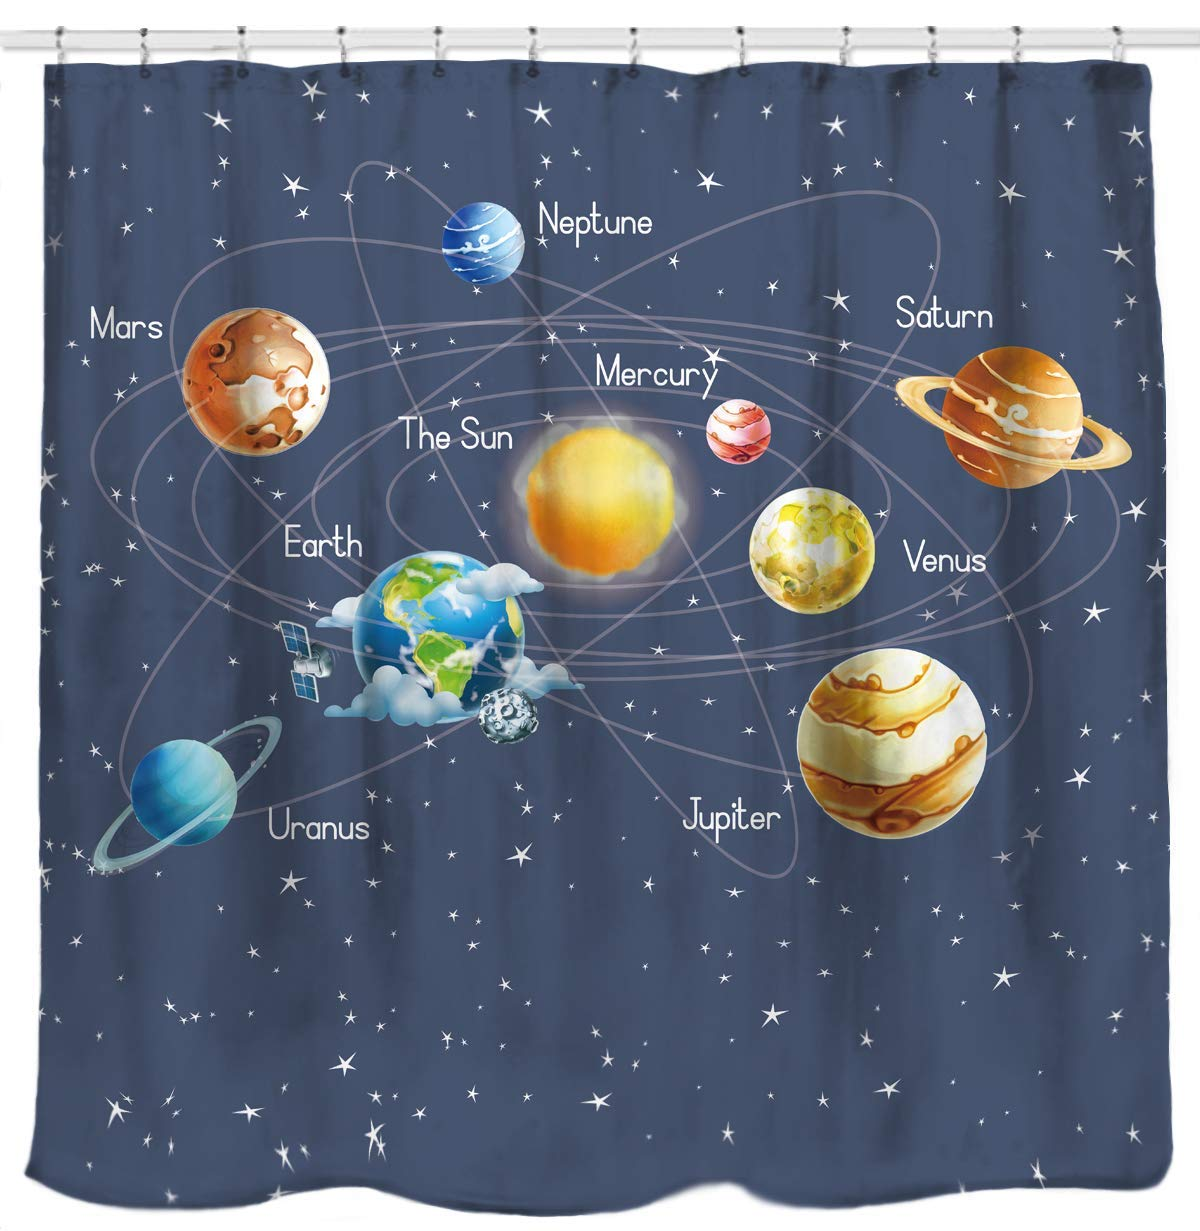 Solar system planets stars and milky way galaxy space fabric astronomical shower curtain with - Galaxy and planets ...